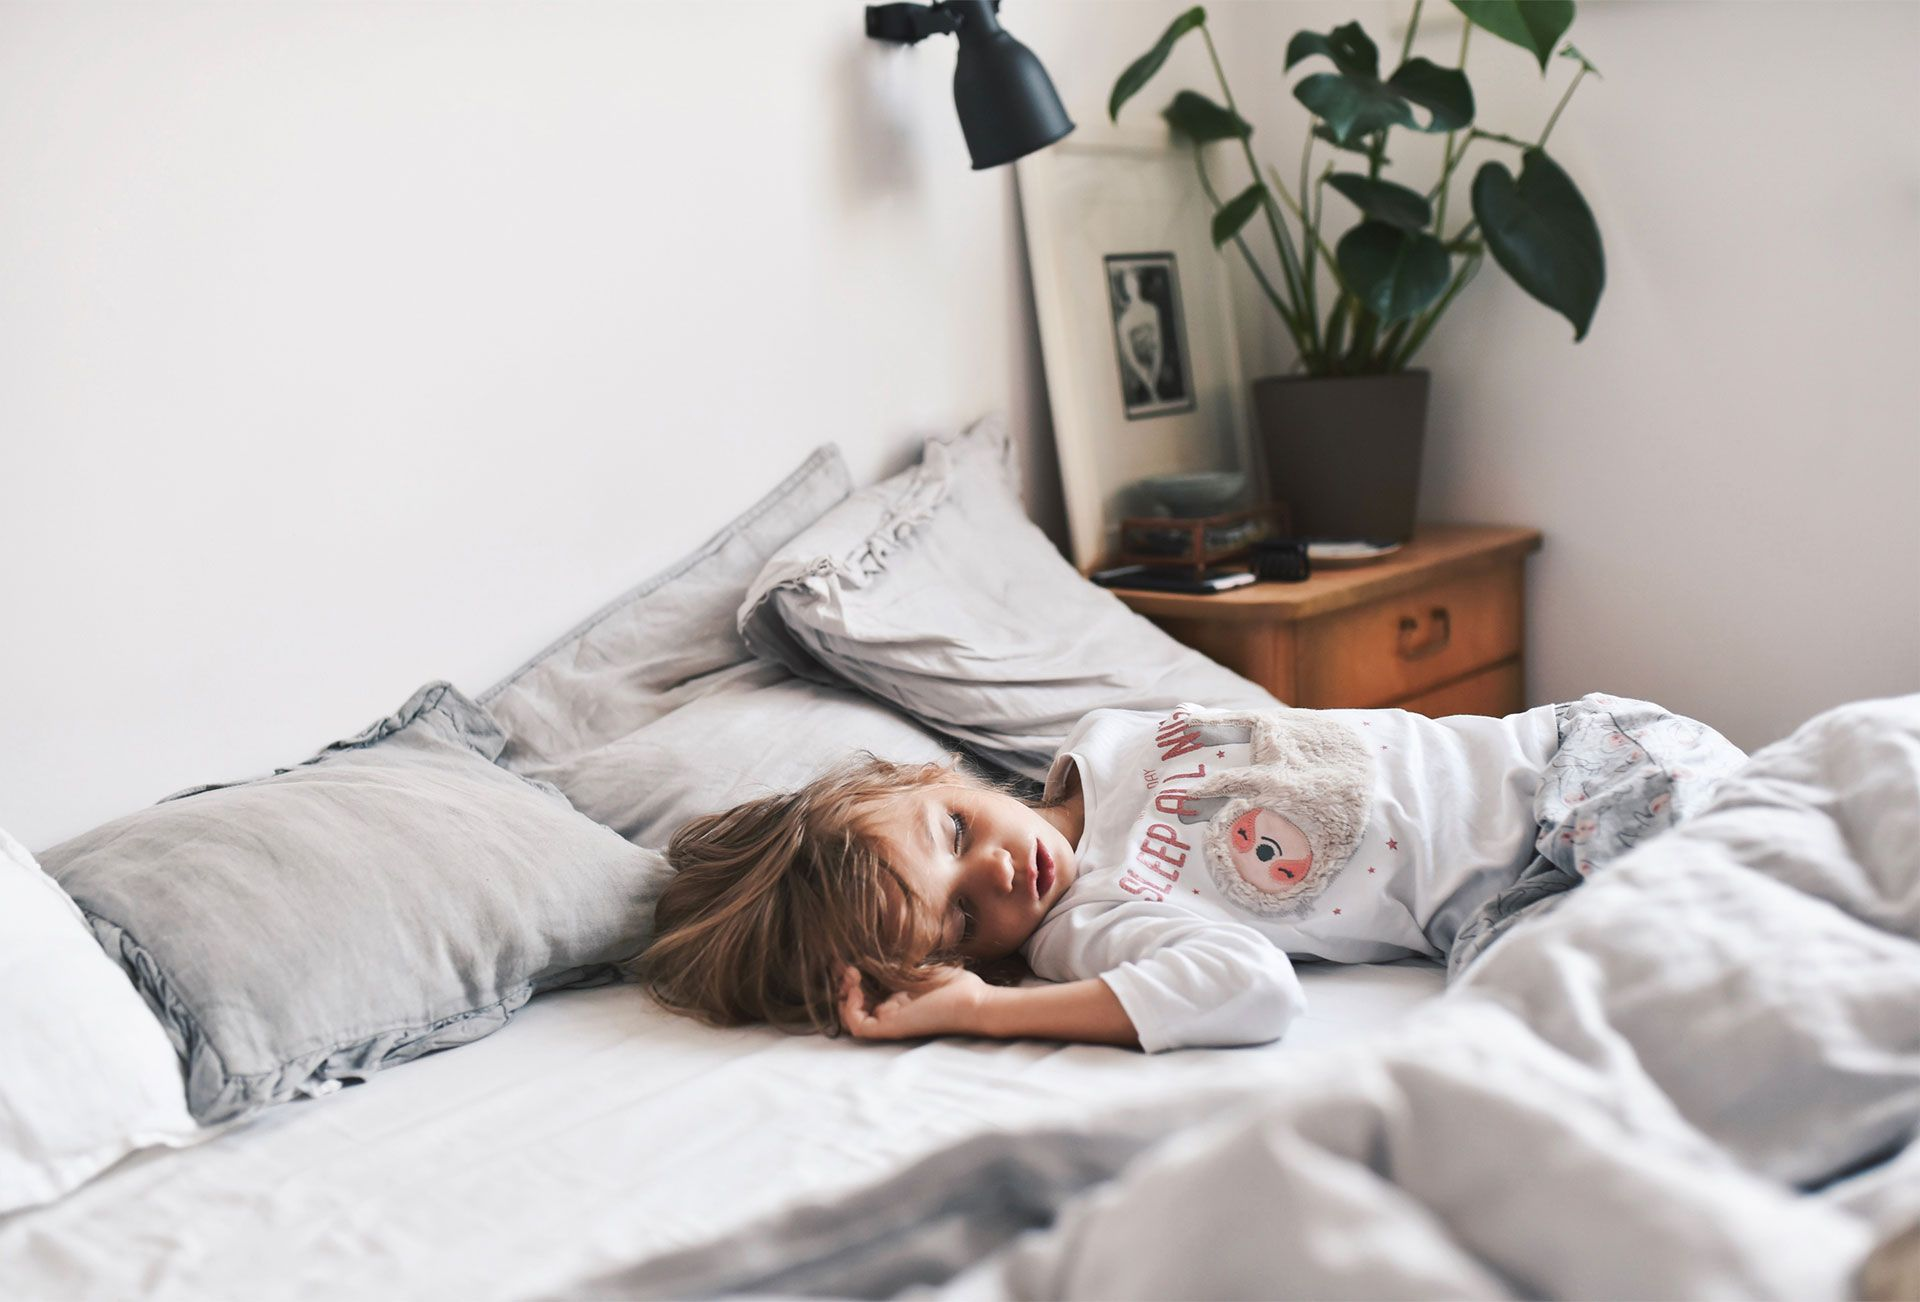 ZARA - #zaraeditorial - KIDS - LIFE IS BETTER IN PYJAMAS